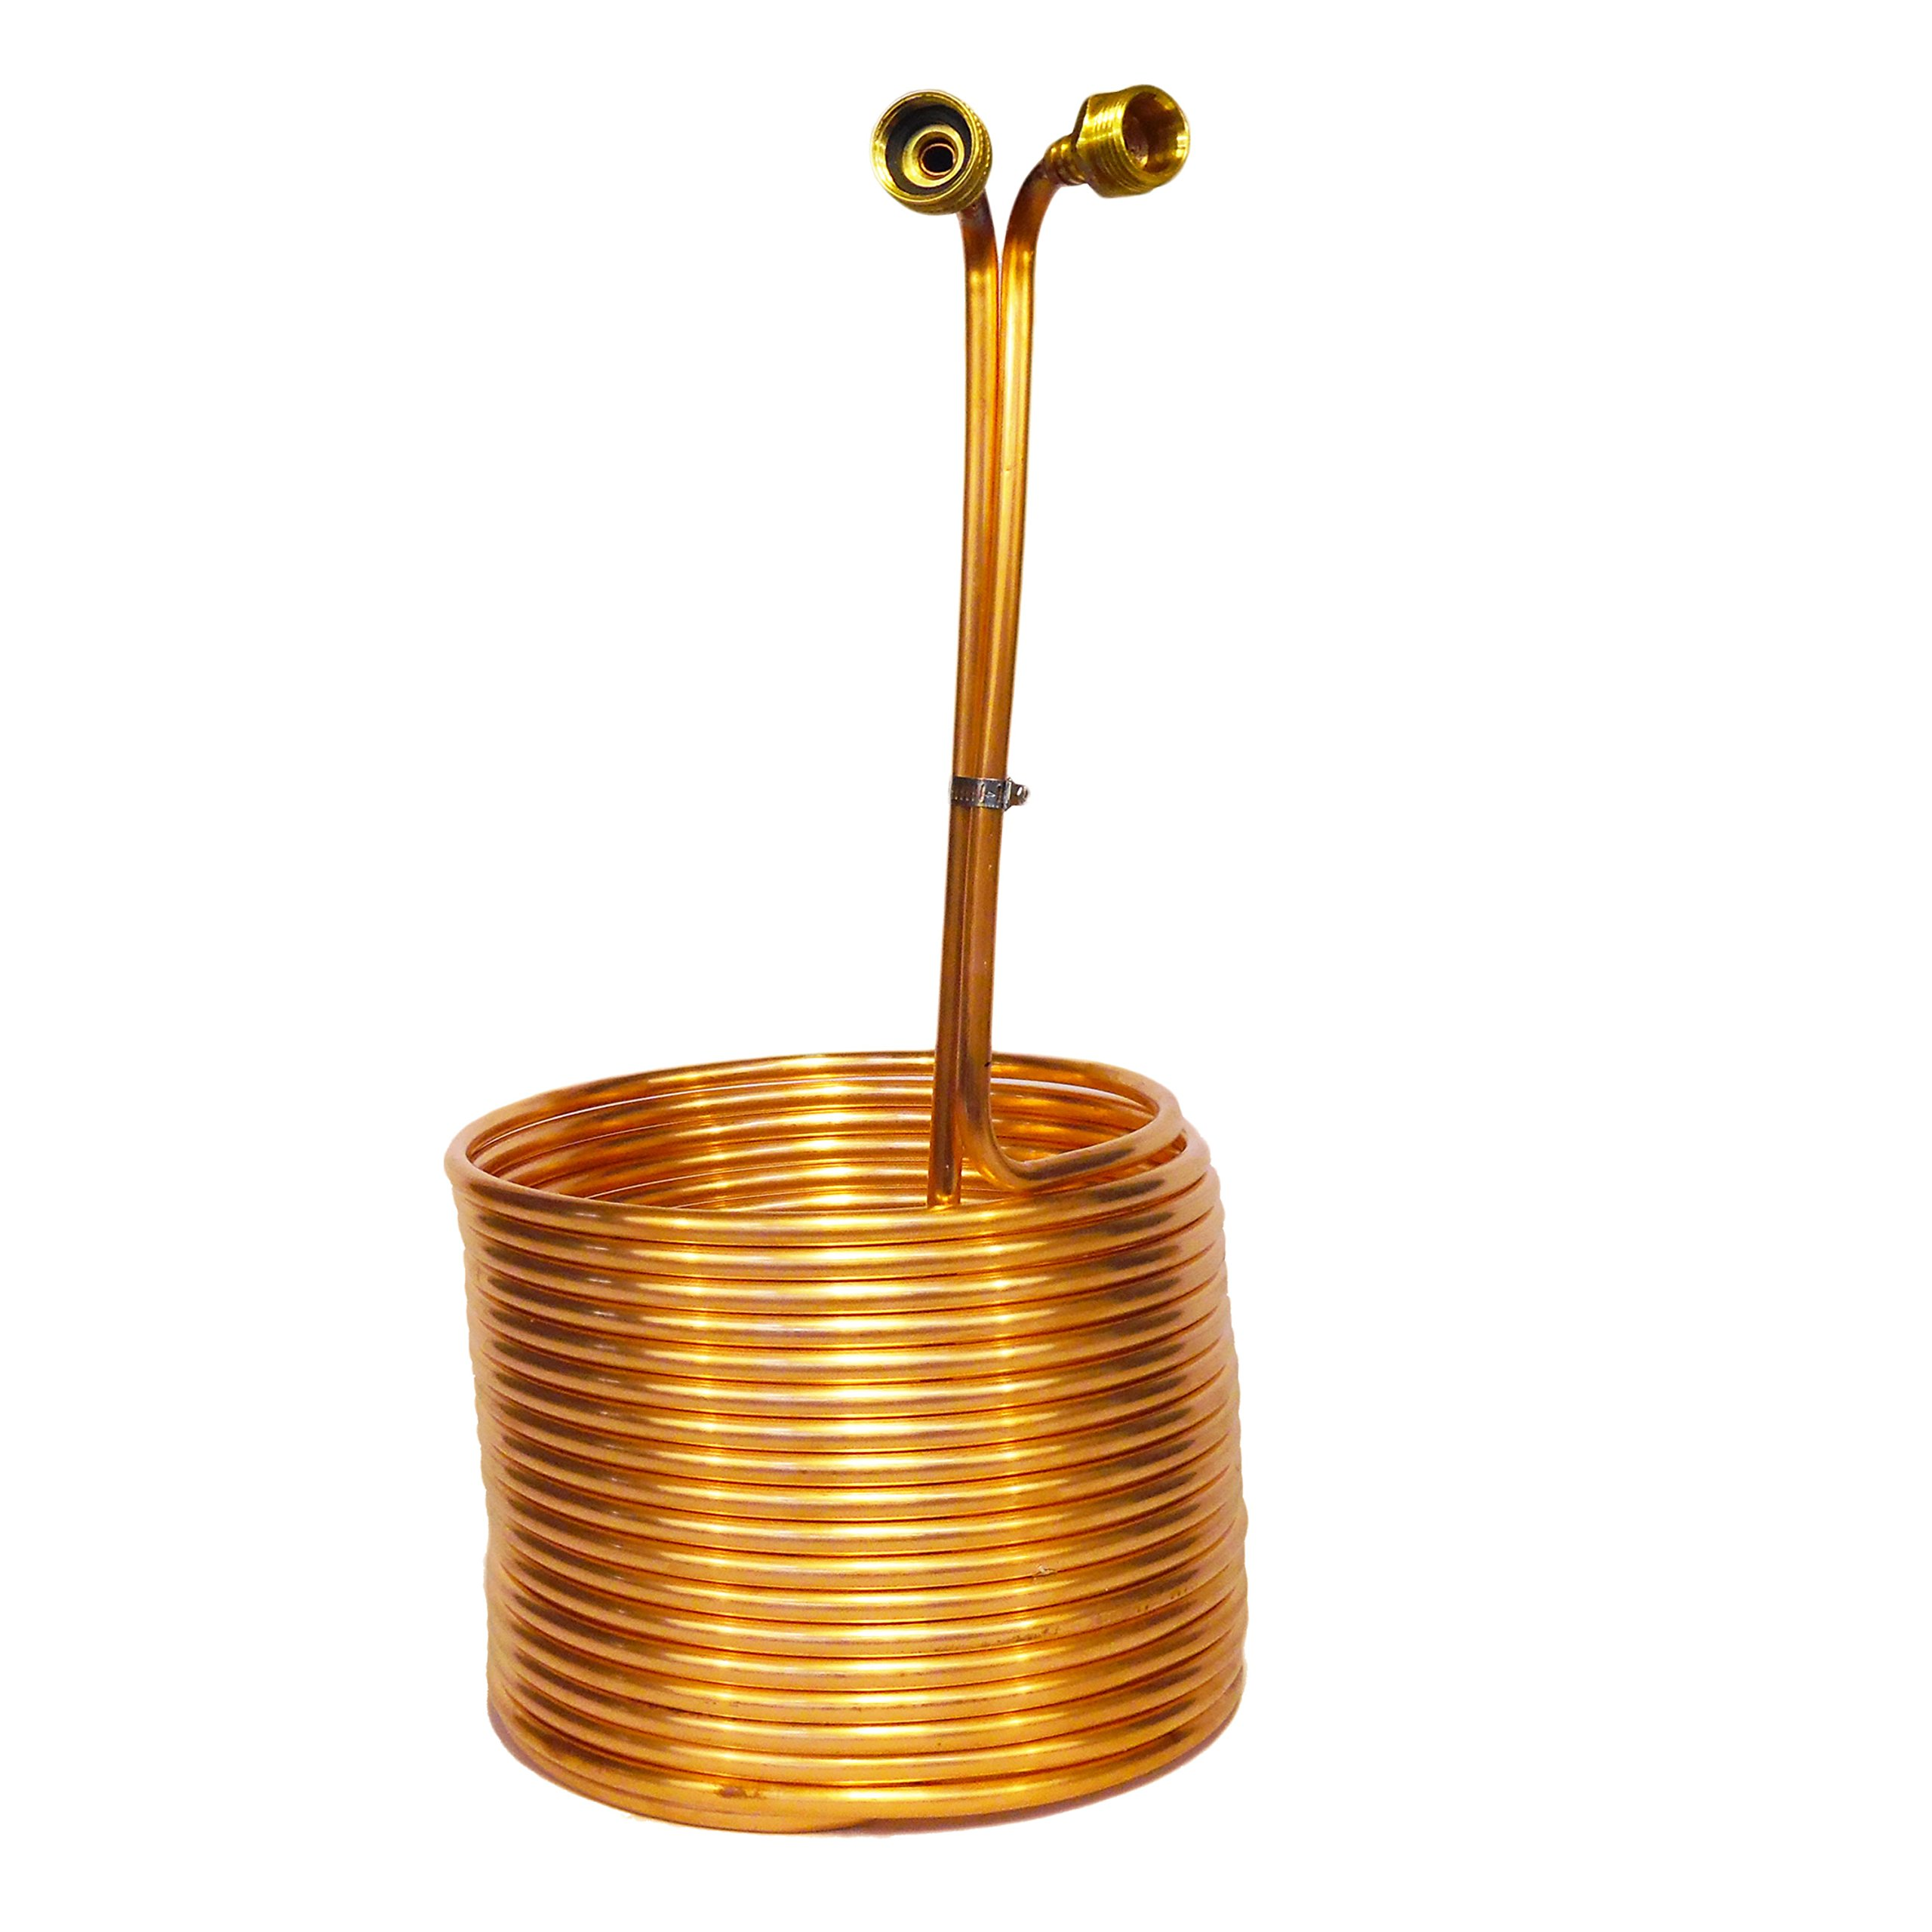 Copper Coil Immersion Chiller 50 Feet Length by Learn To Brew LLC